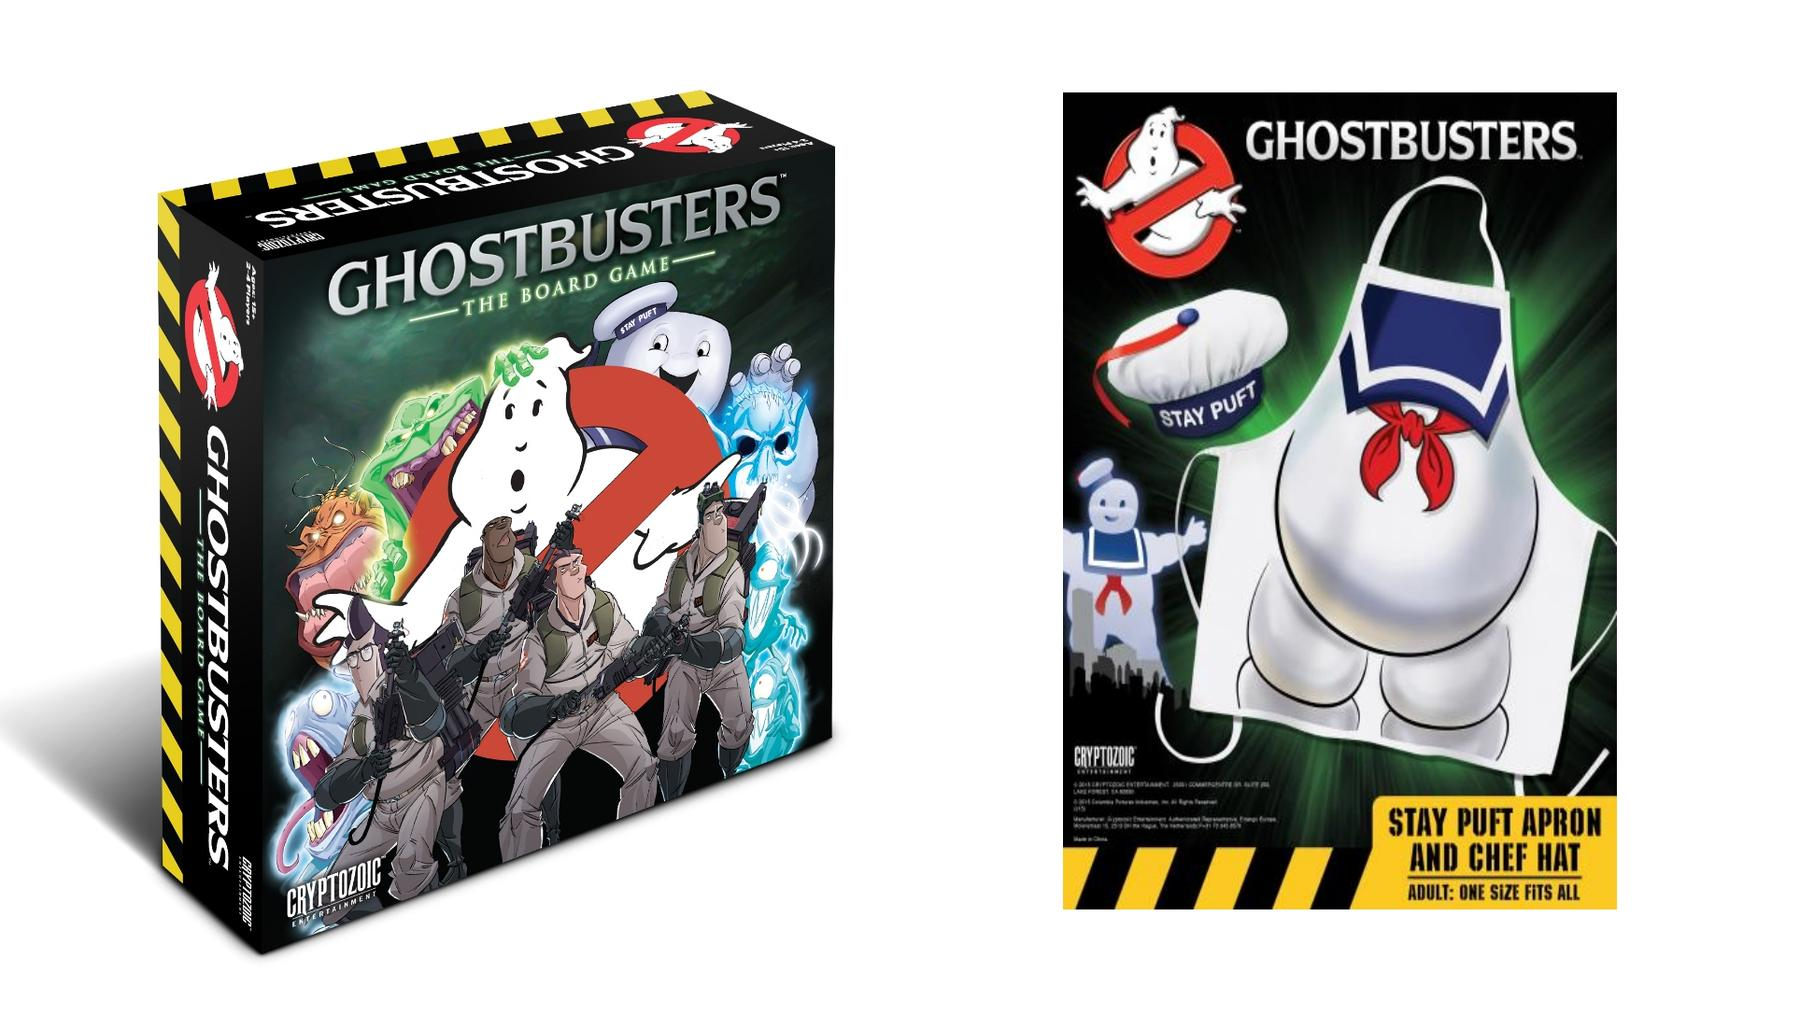 White apron ragnarok - Ghostbusters The Board Game And Stay Puft Apron Chef Hat Set Combo